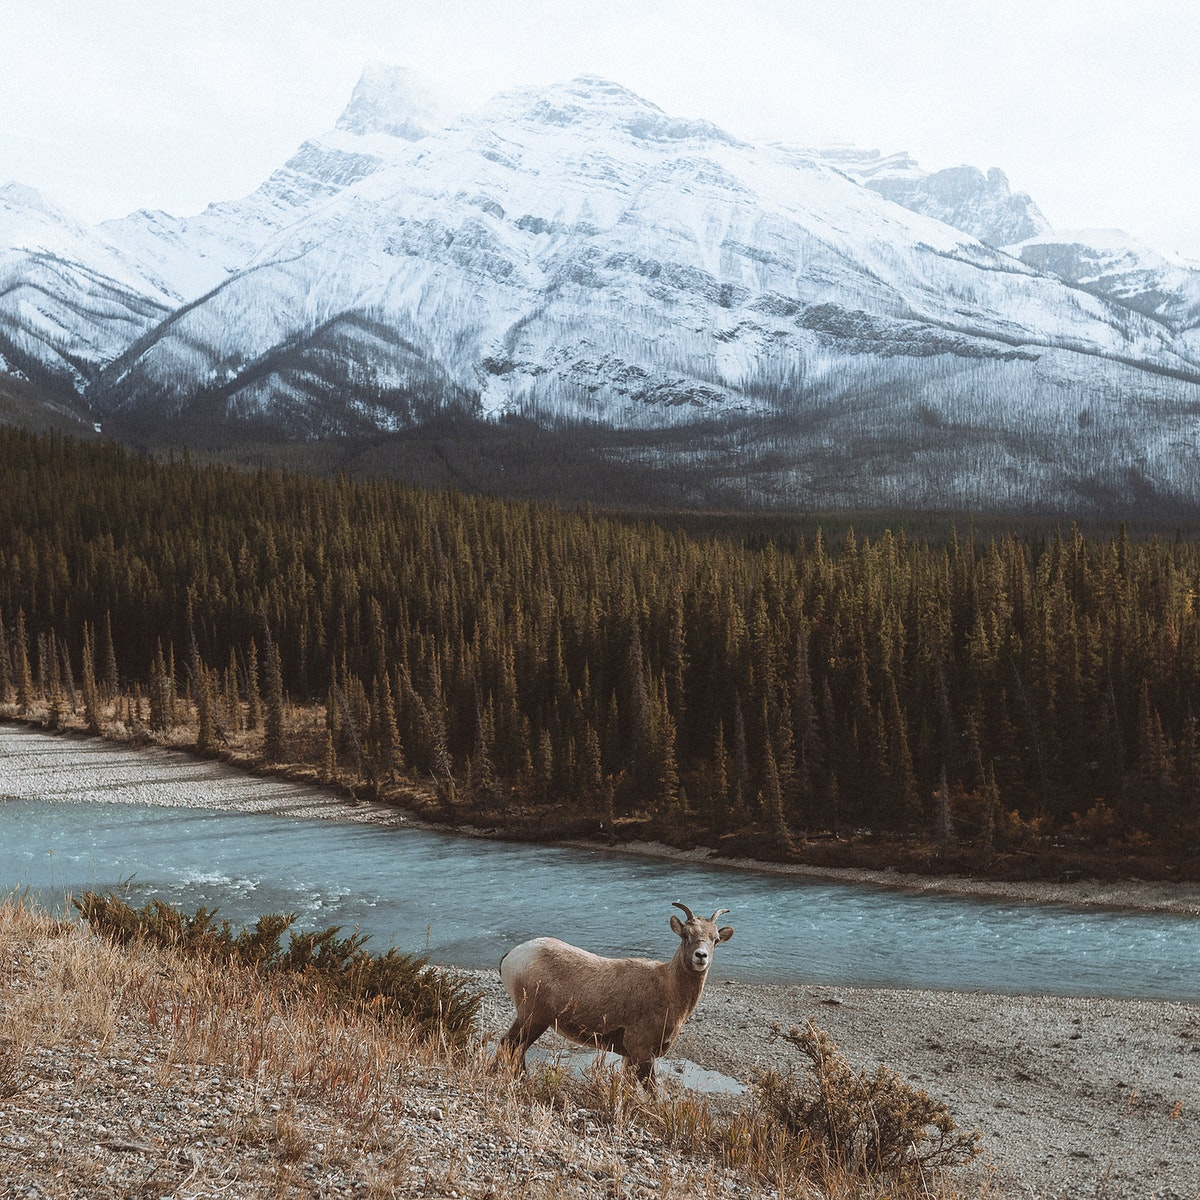 Goat by the hill in the forest